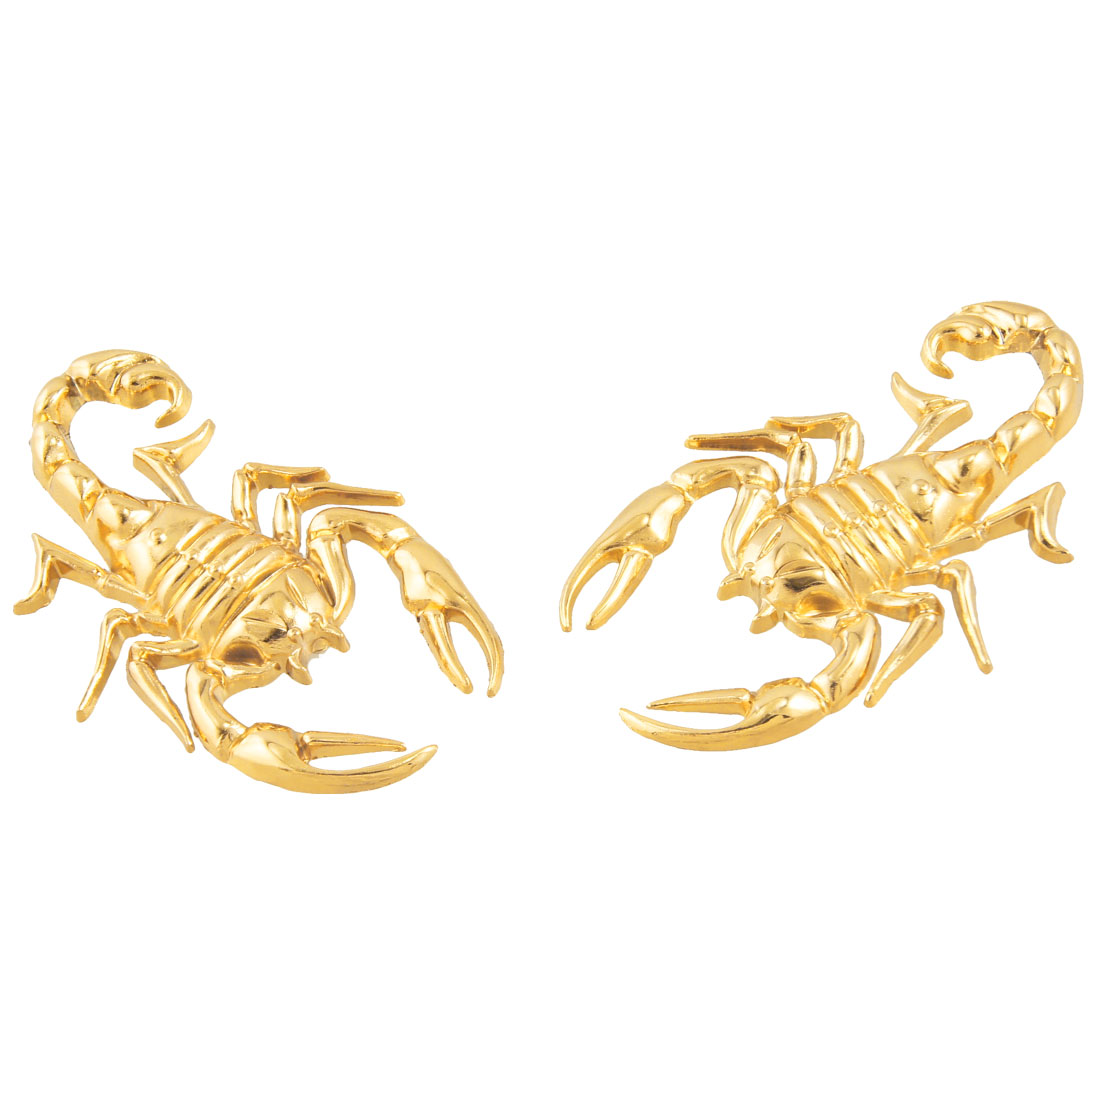 Scorpion Shaped Gold Tone Stickers Auto Car Graphic Decals 2 Pcs